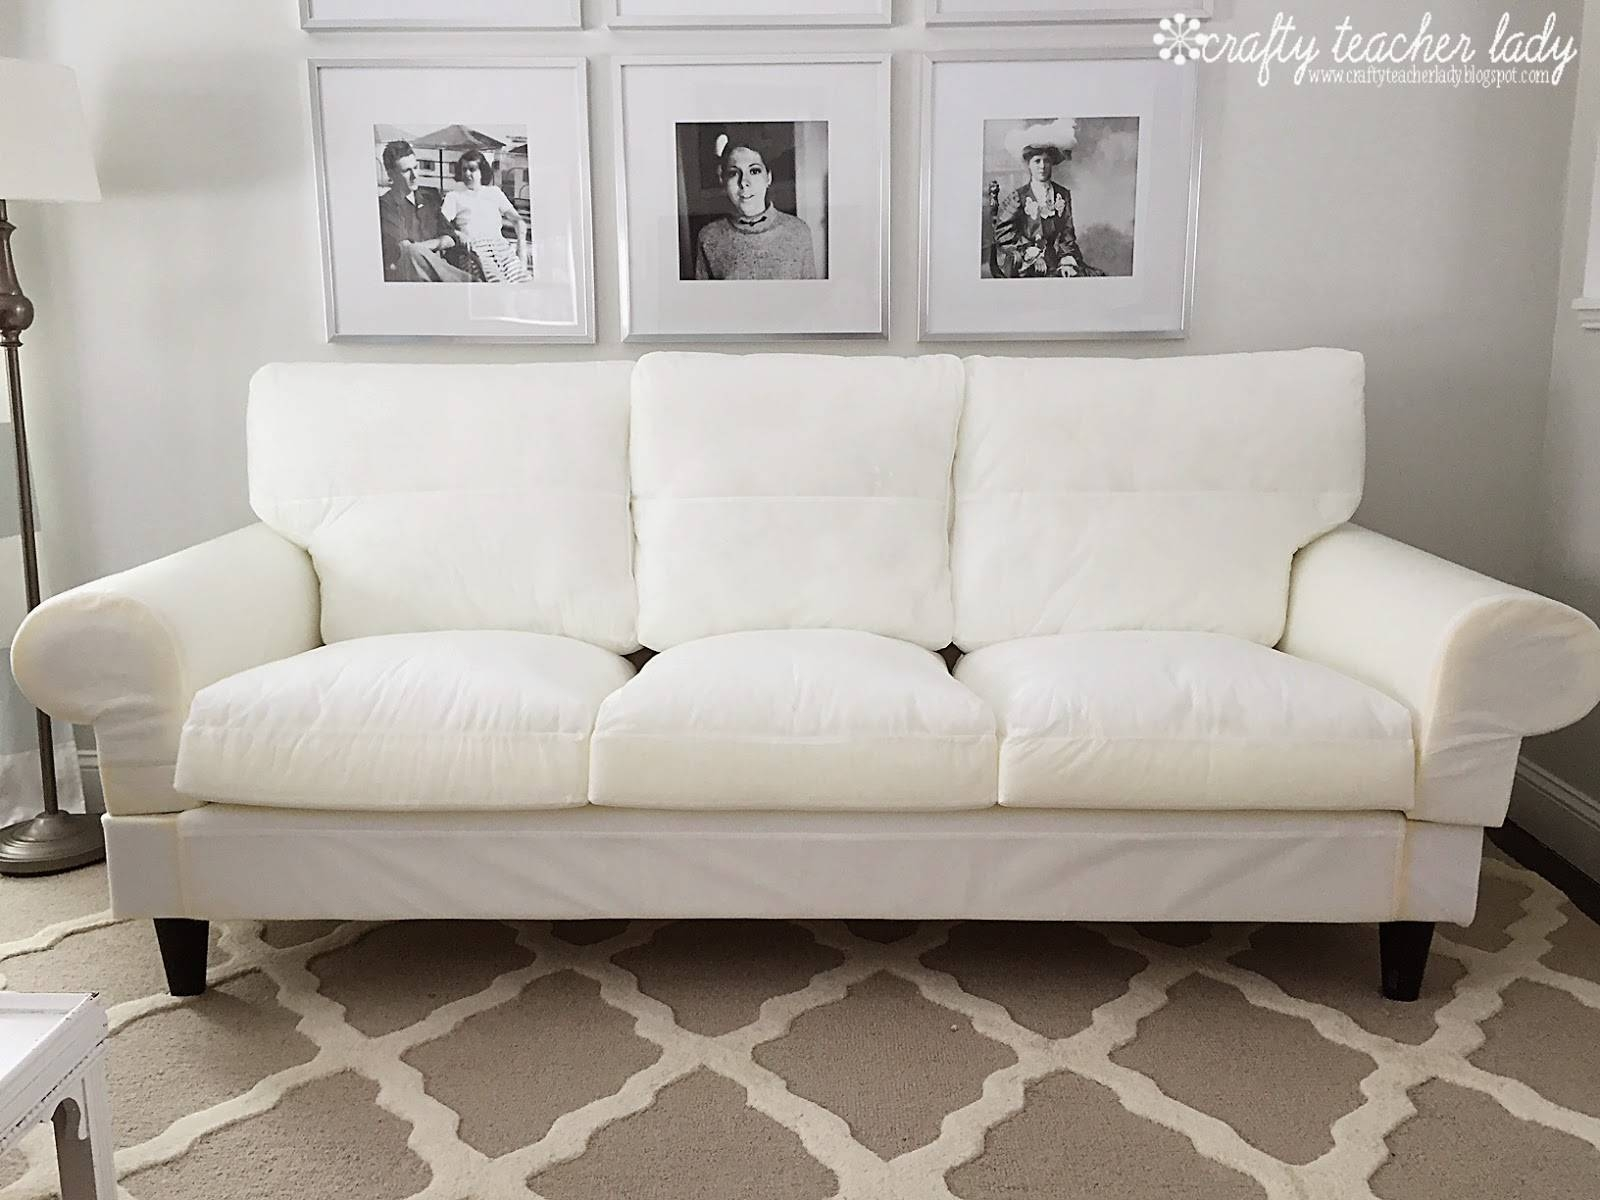 Furniture: High Quality Cotton Material For Couch Slipcovers Ikea in Loveseat Slipcovers 3 Pieces (Image 4 of 15)